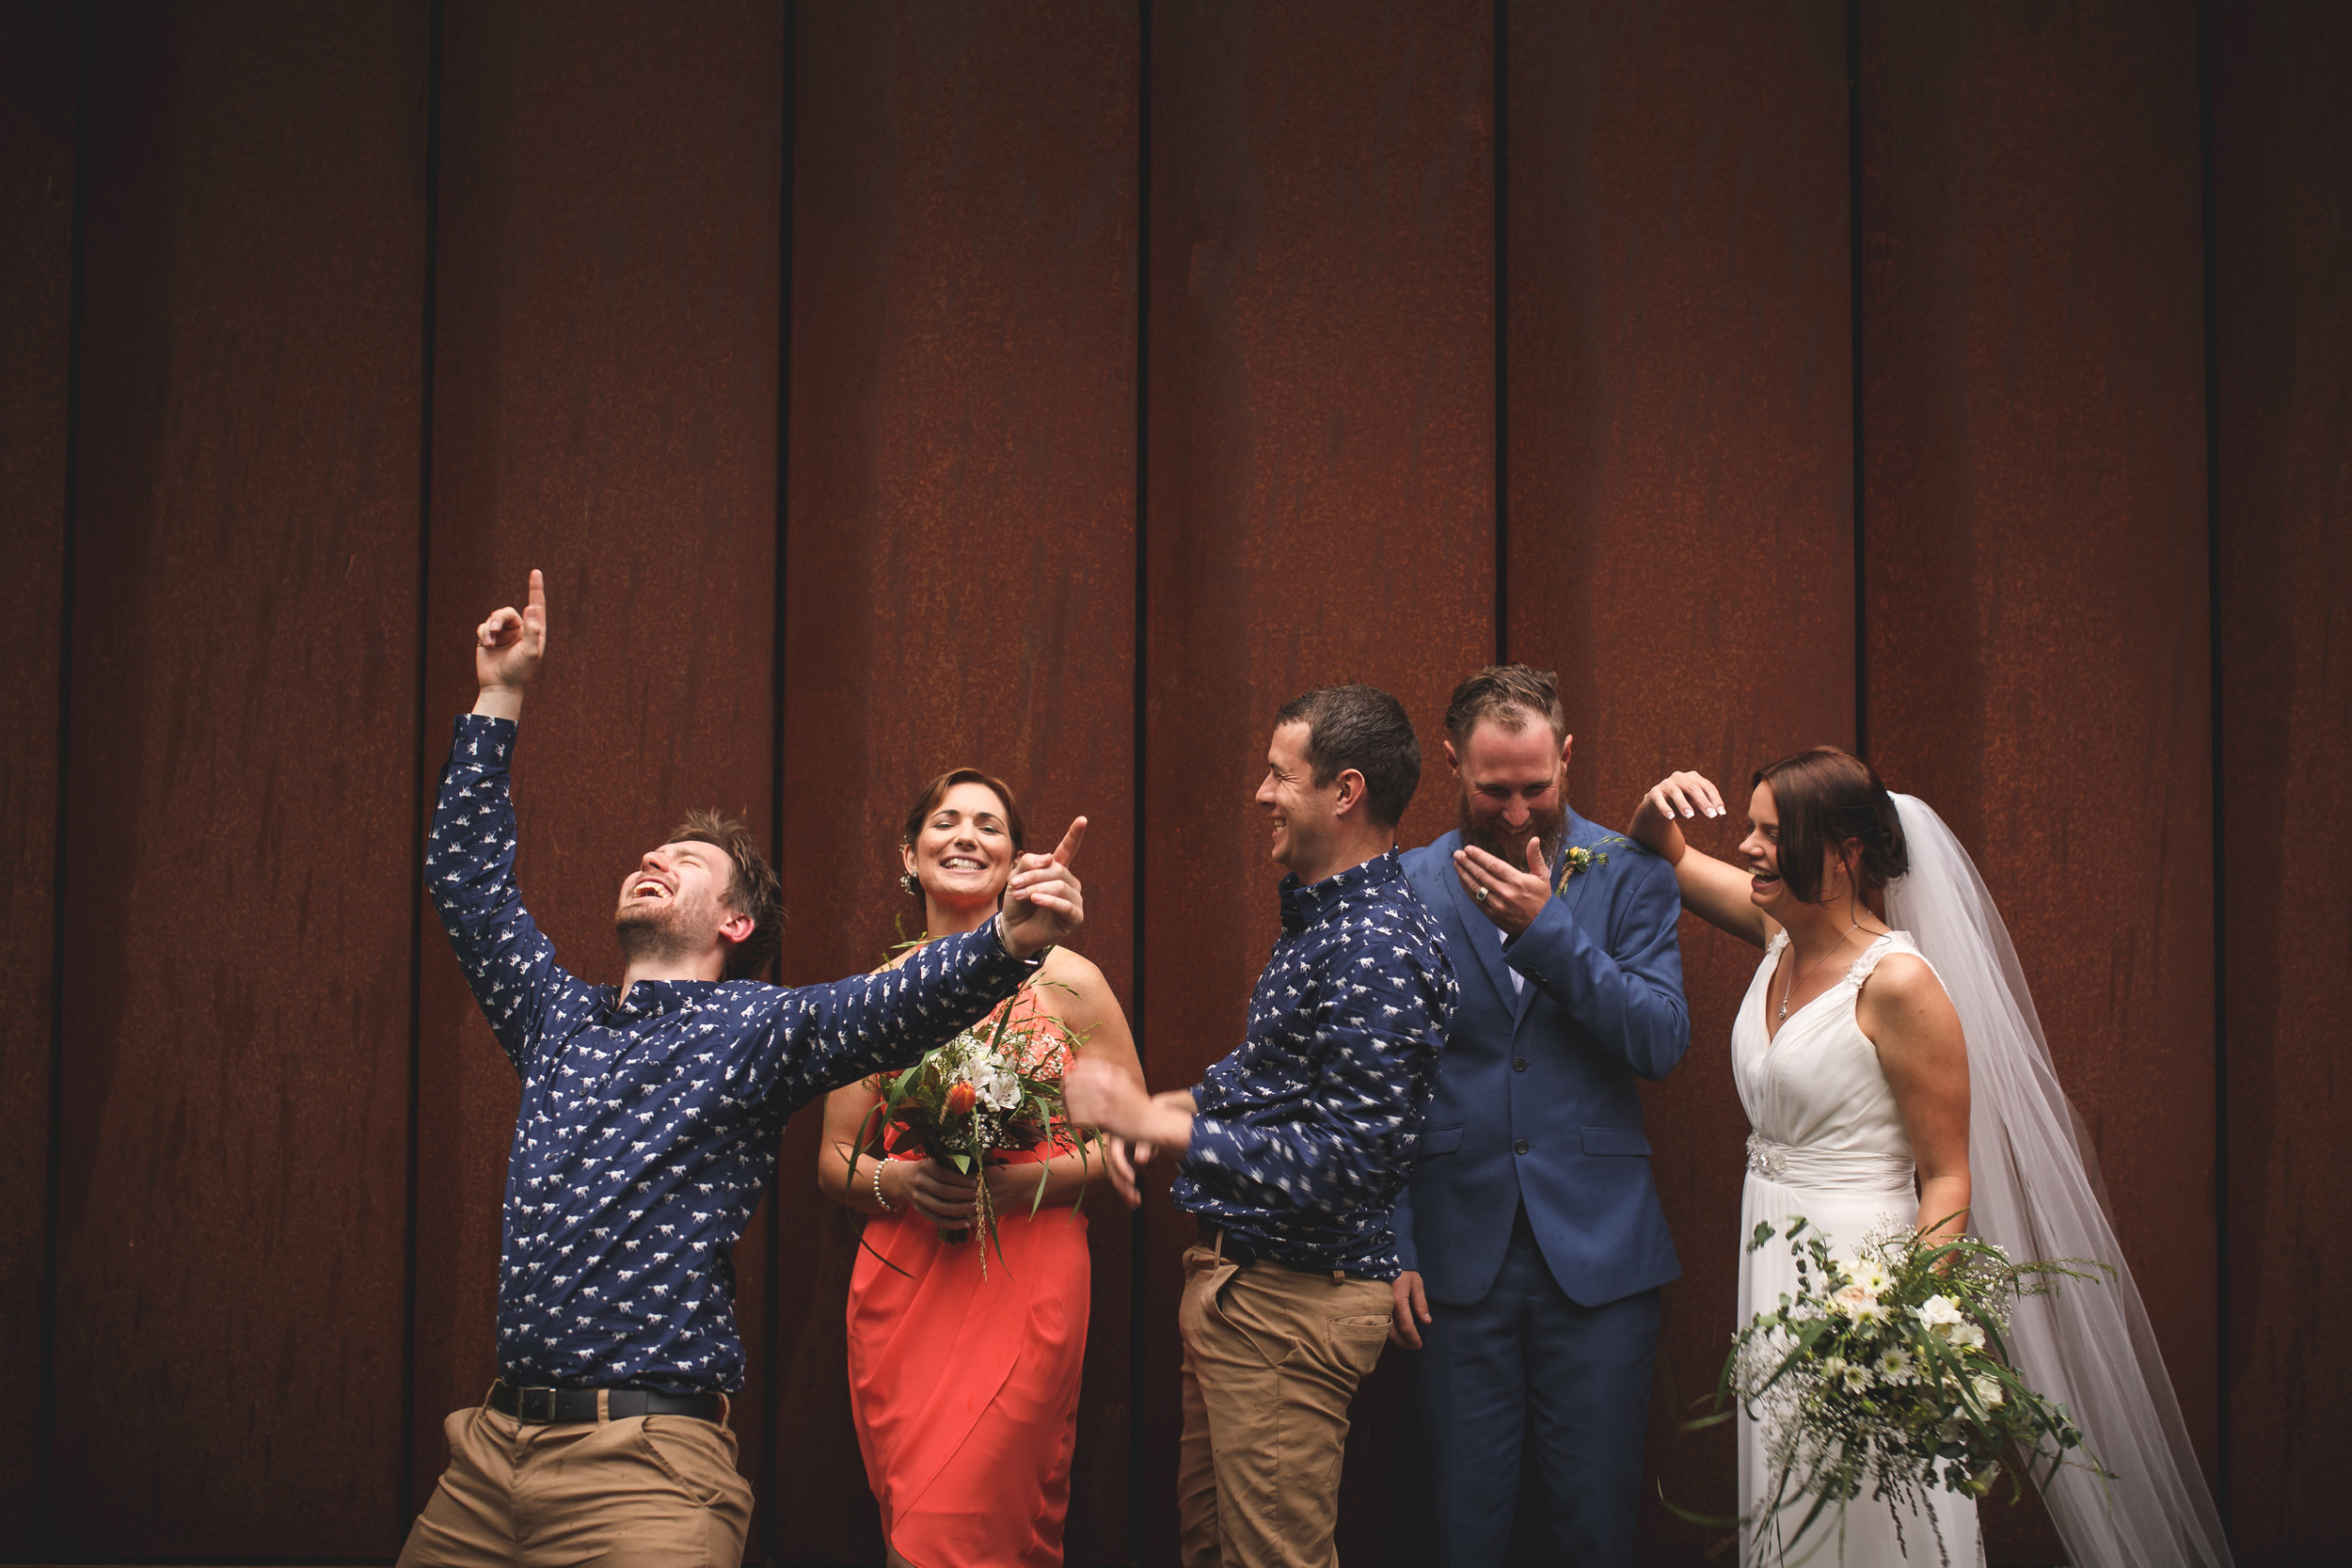 - How to not botch your first wedding shootVeteran wedding photographer Jessica Jones lays down seven simple tips for those embarking on their first wedding shootSee one of Jess's blog posts here